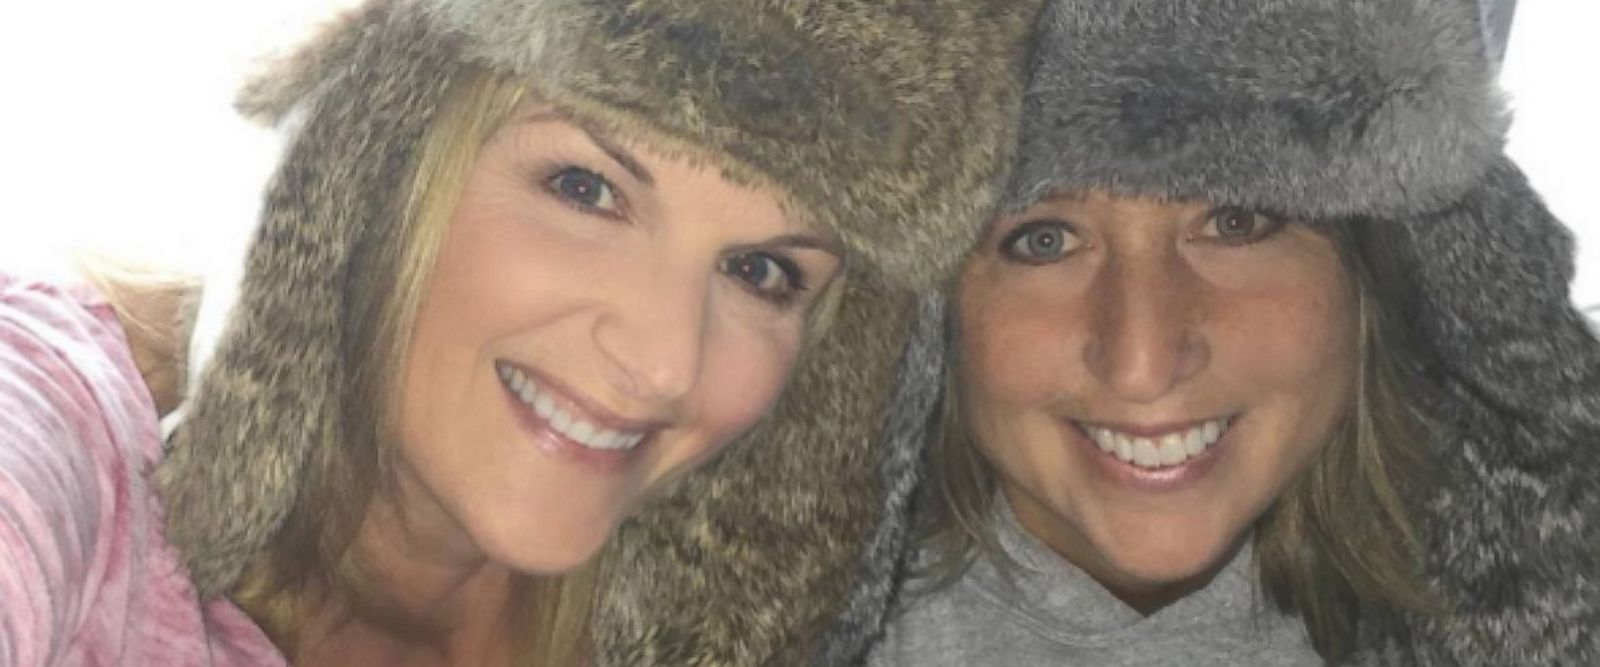 """PHOTO: Trisha Yearwood posted this photo to Instagram on Jan. 23, 2016 with the caption, """"Coffee cheers! Going LIVE on Facebook in 1 hour. What do YOU want to talk about? Stop by and say Hi! Xo Trisha"""""""